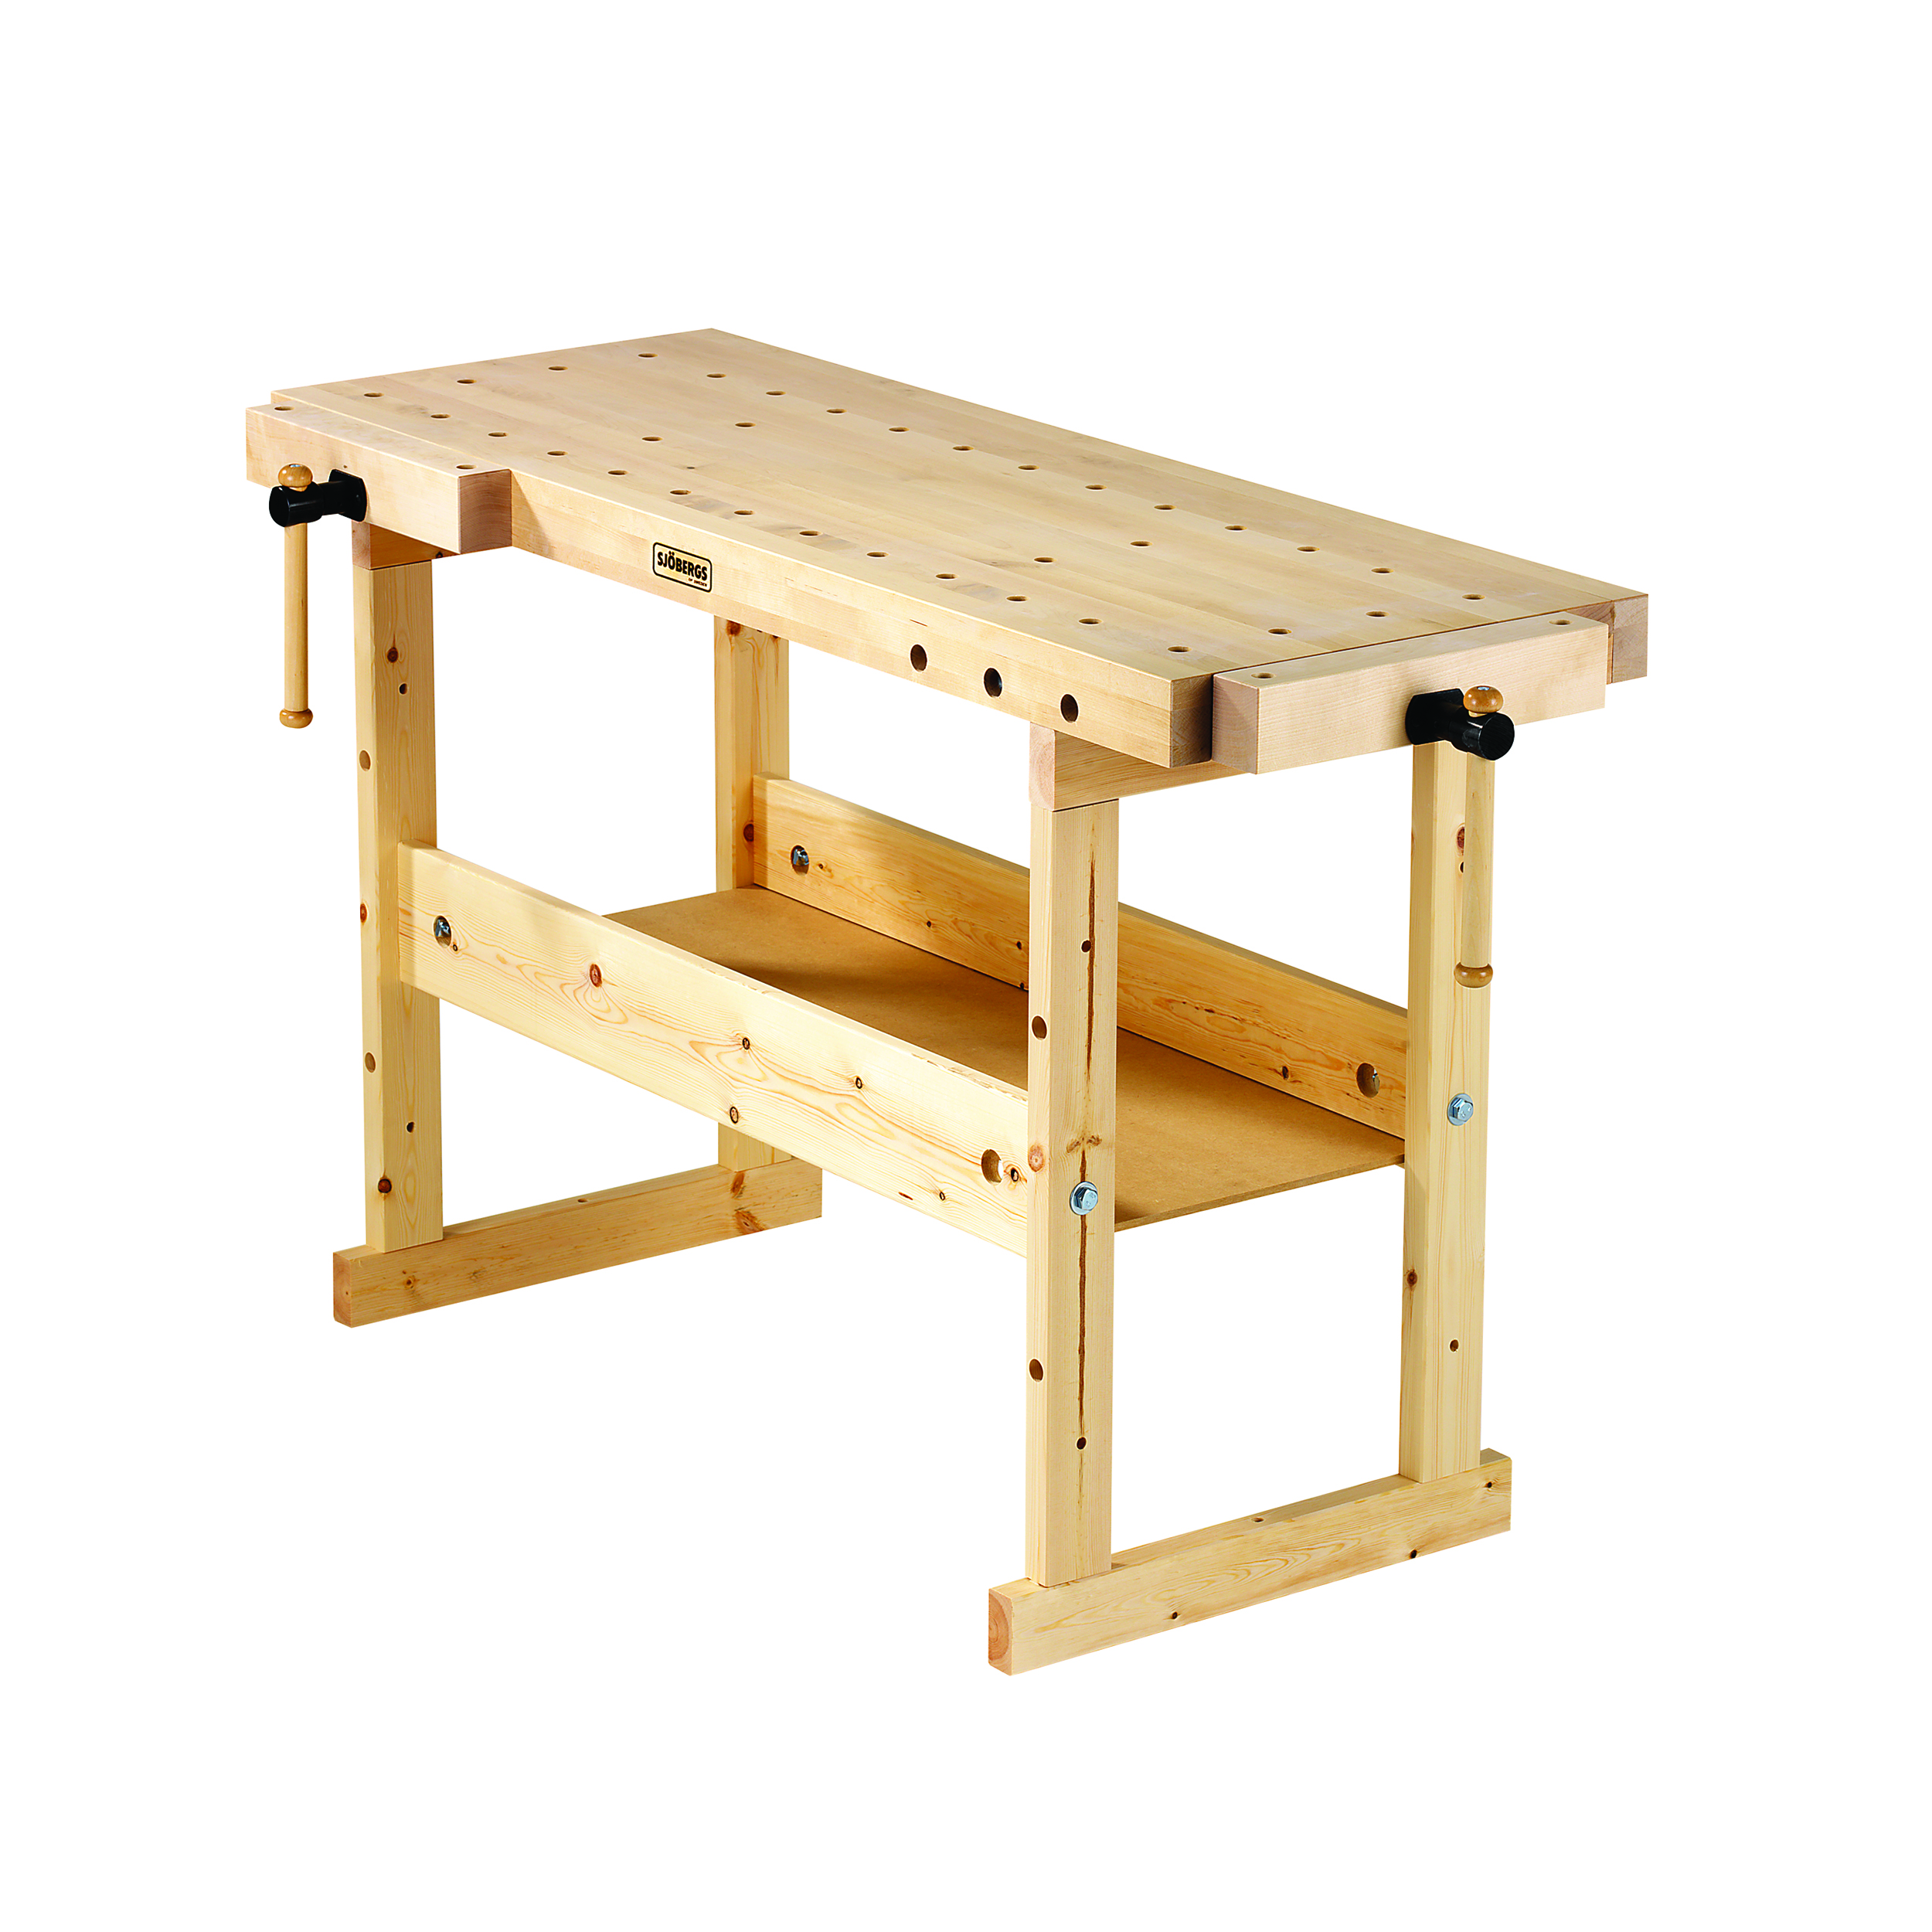 Sjoberg's Nordic Plus 1450 Workbench